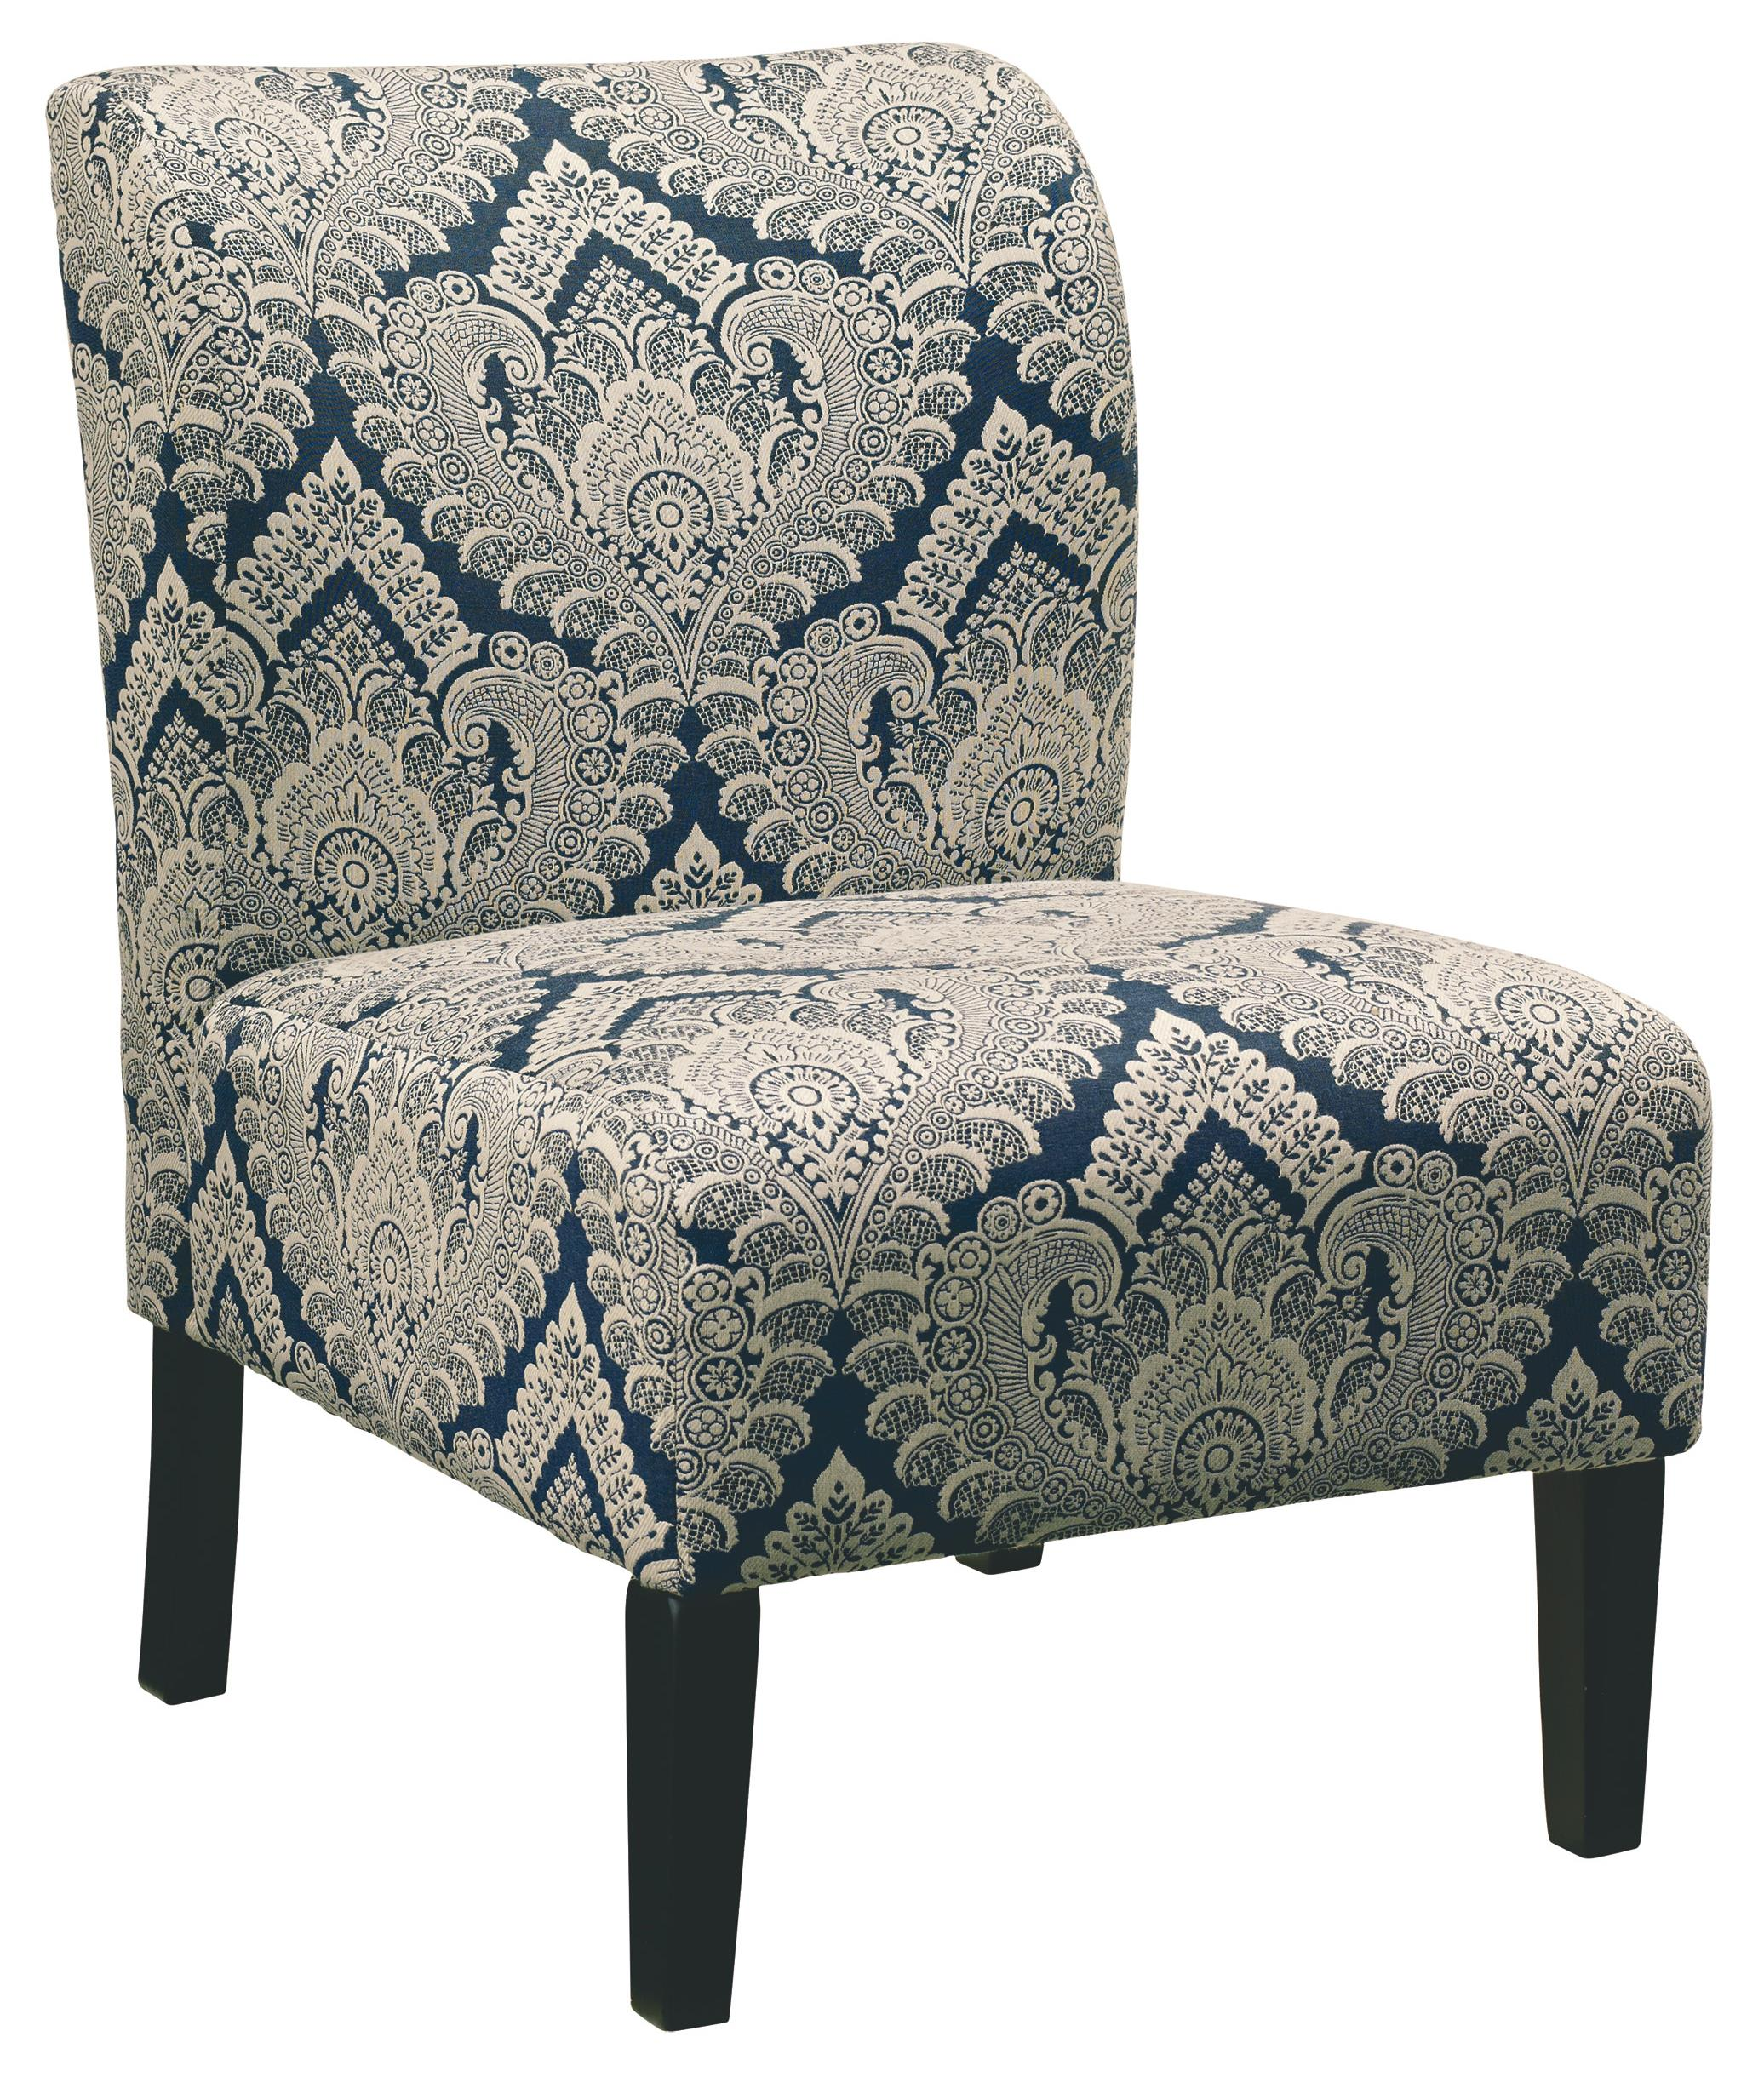 Honnally Honnaly Accent Chair by Ashley at Morris Home